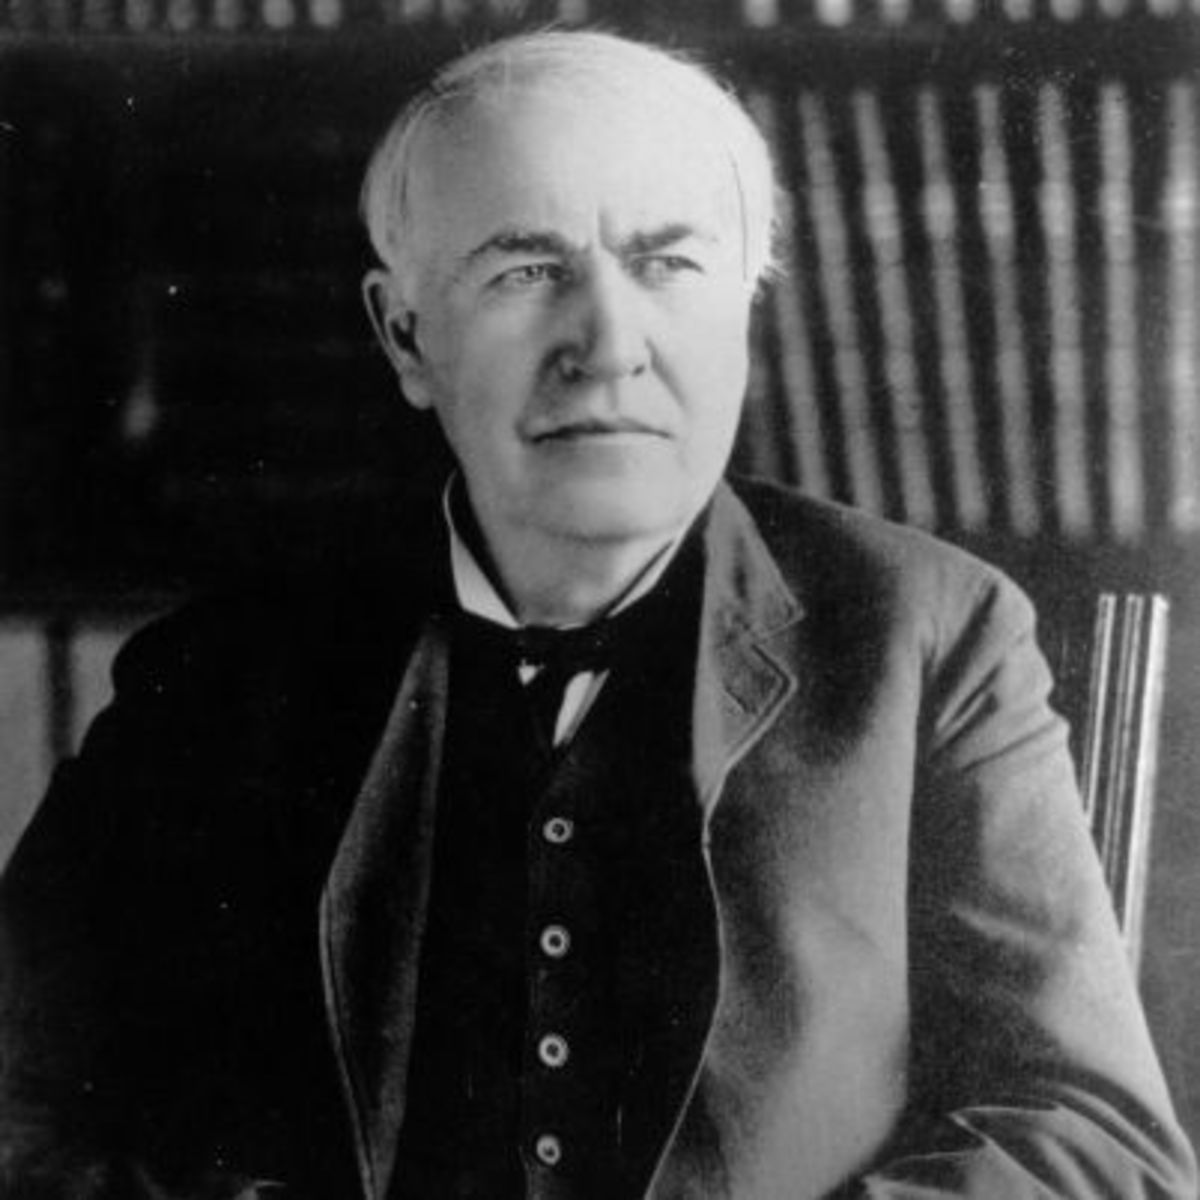 Thomas Edison used carbon fiber as filament in one of the first incandescent light bulbs.